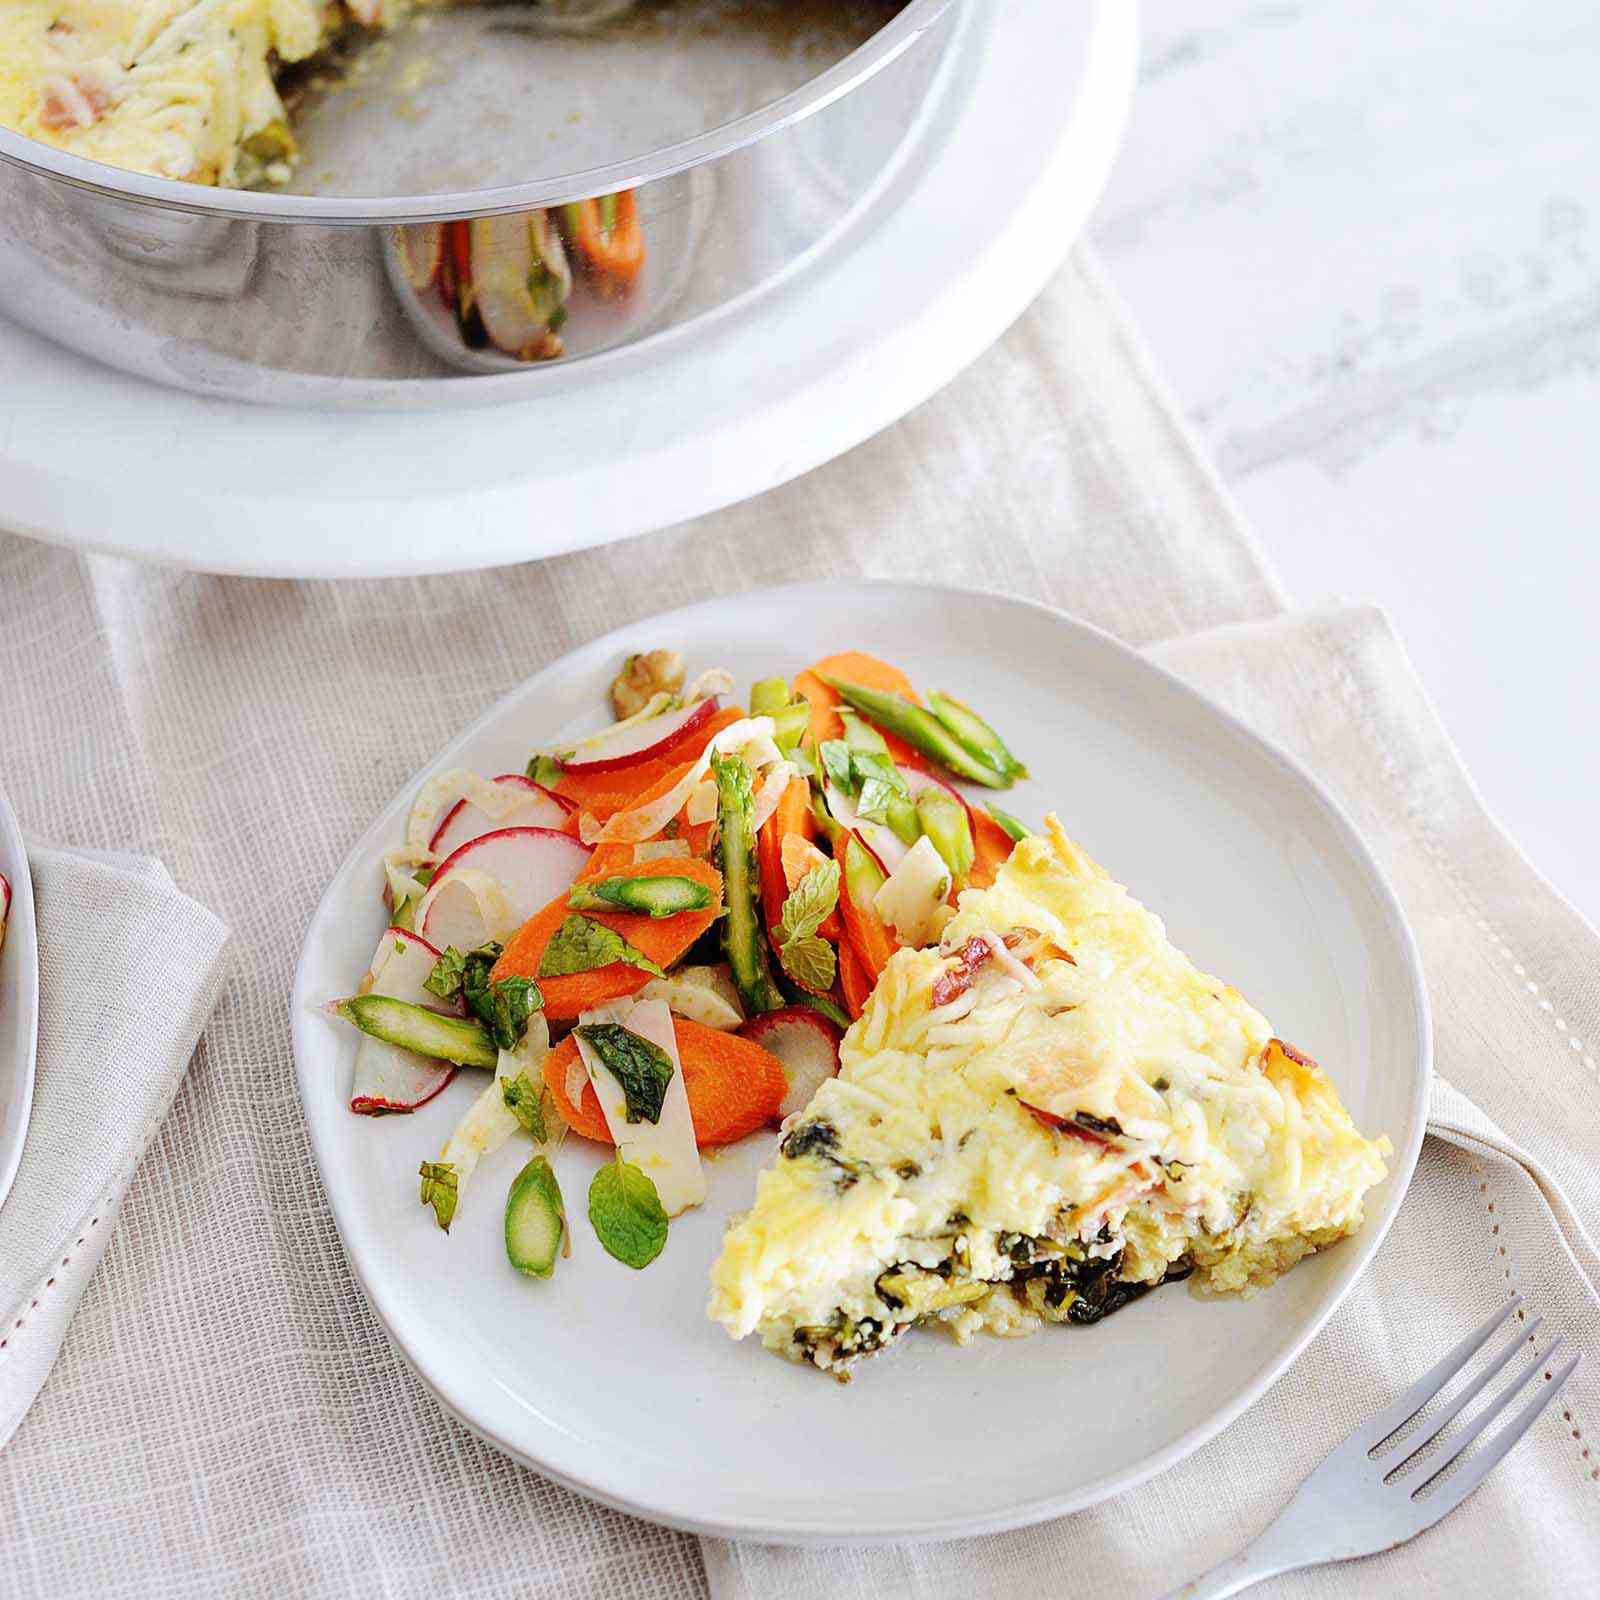 A white plate with a side view of healthy breakfast casserole and a chopped spring salad of asparagus, carrots and radishes. Above the plate is the skillet with the breakfast casserole inside. Two slices are missing from the casserole. Cream linens are under the plate and the skillet is on a round tray.